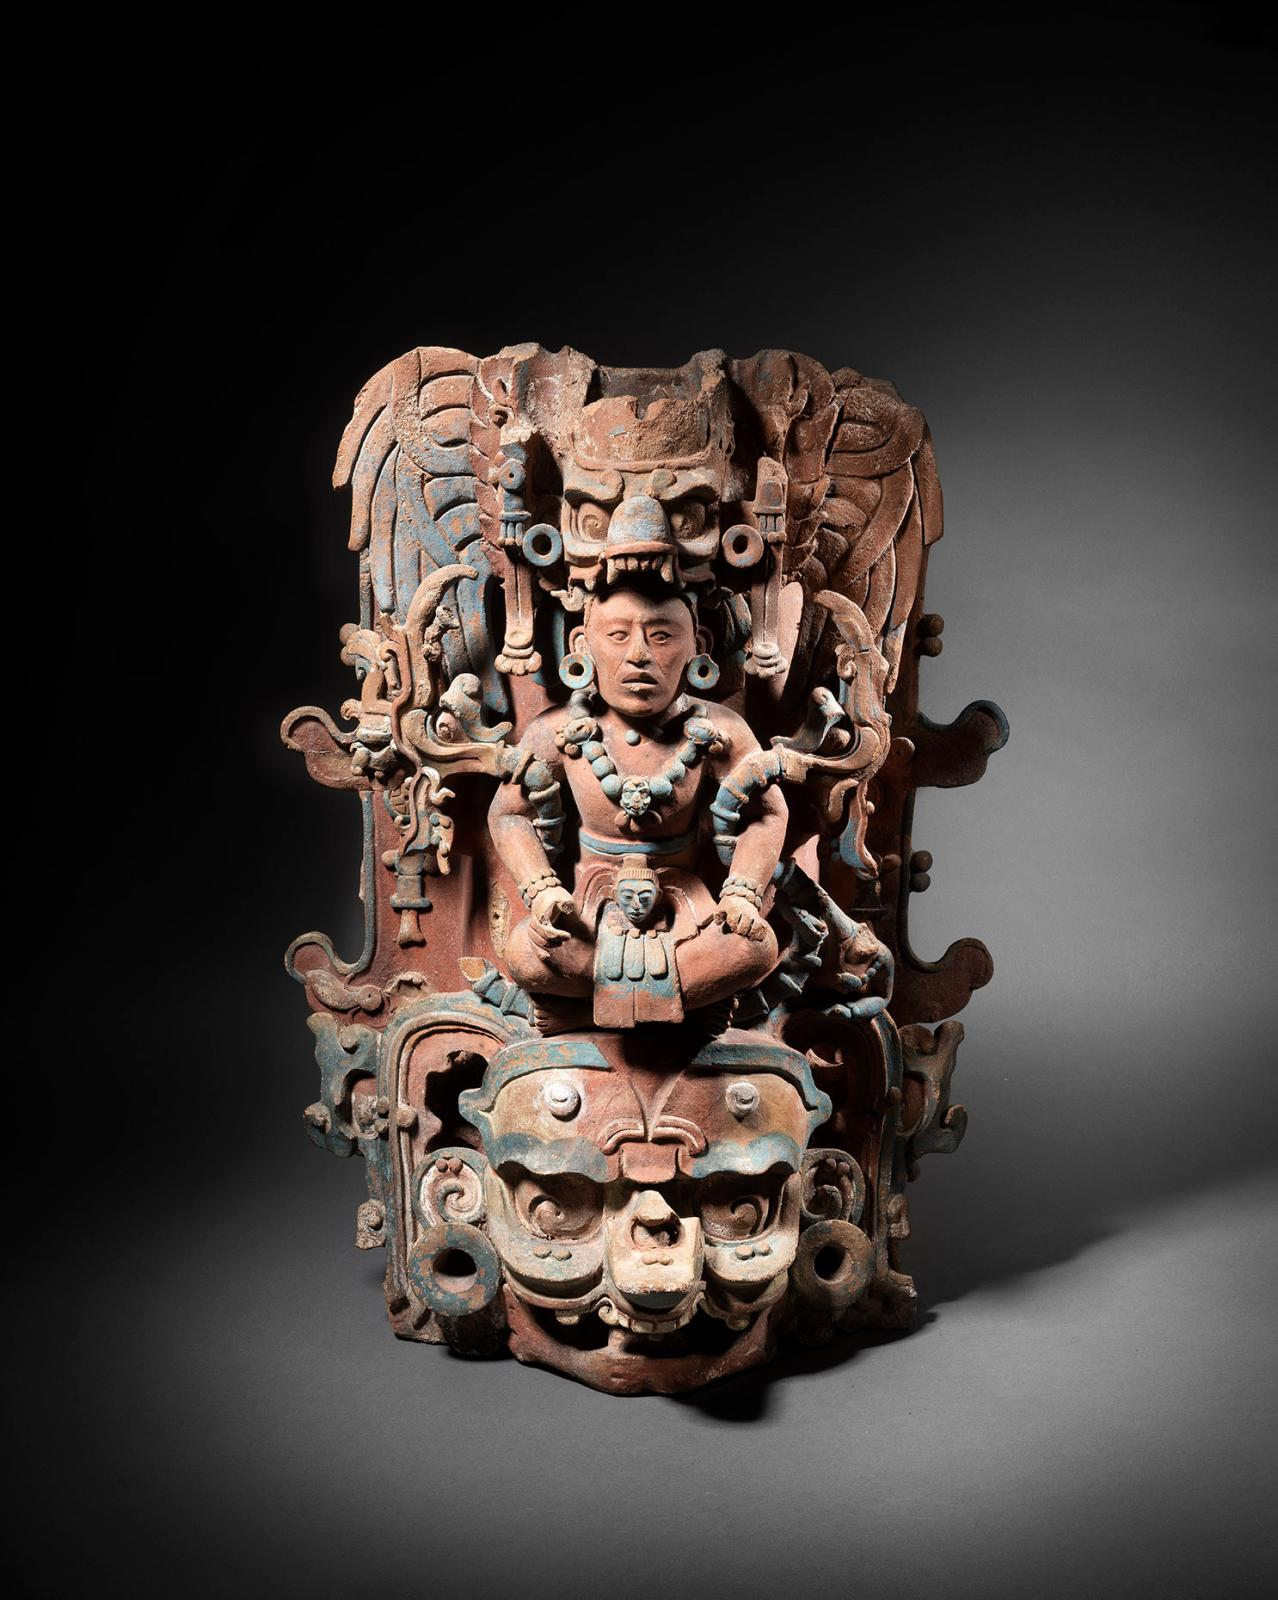 Mexico, Classical period, 600-900 CE, Maya culture, Censor, representing a young lord sitting on the head of the monster Witz Tuun, polych